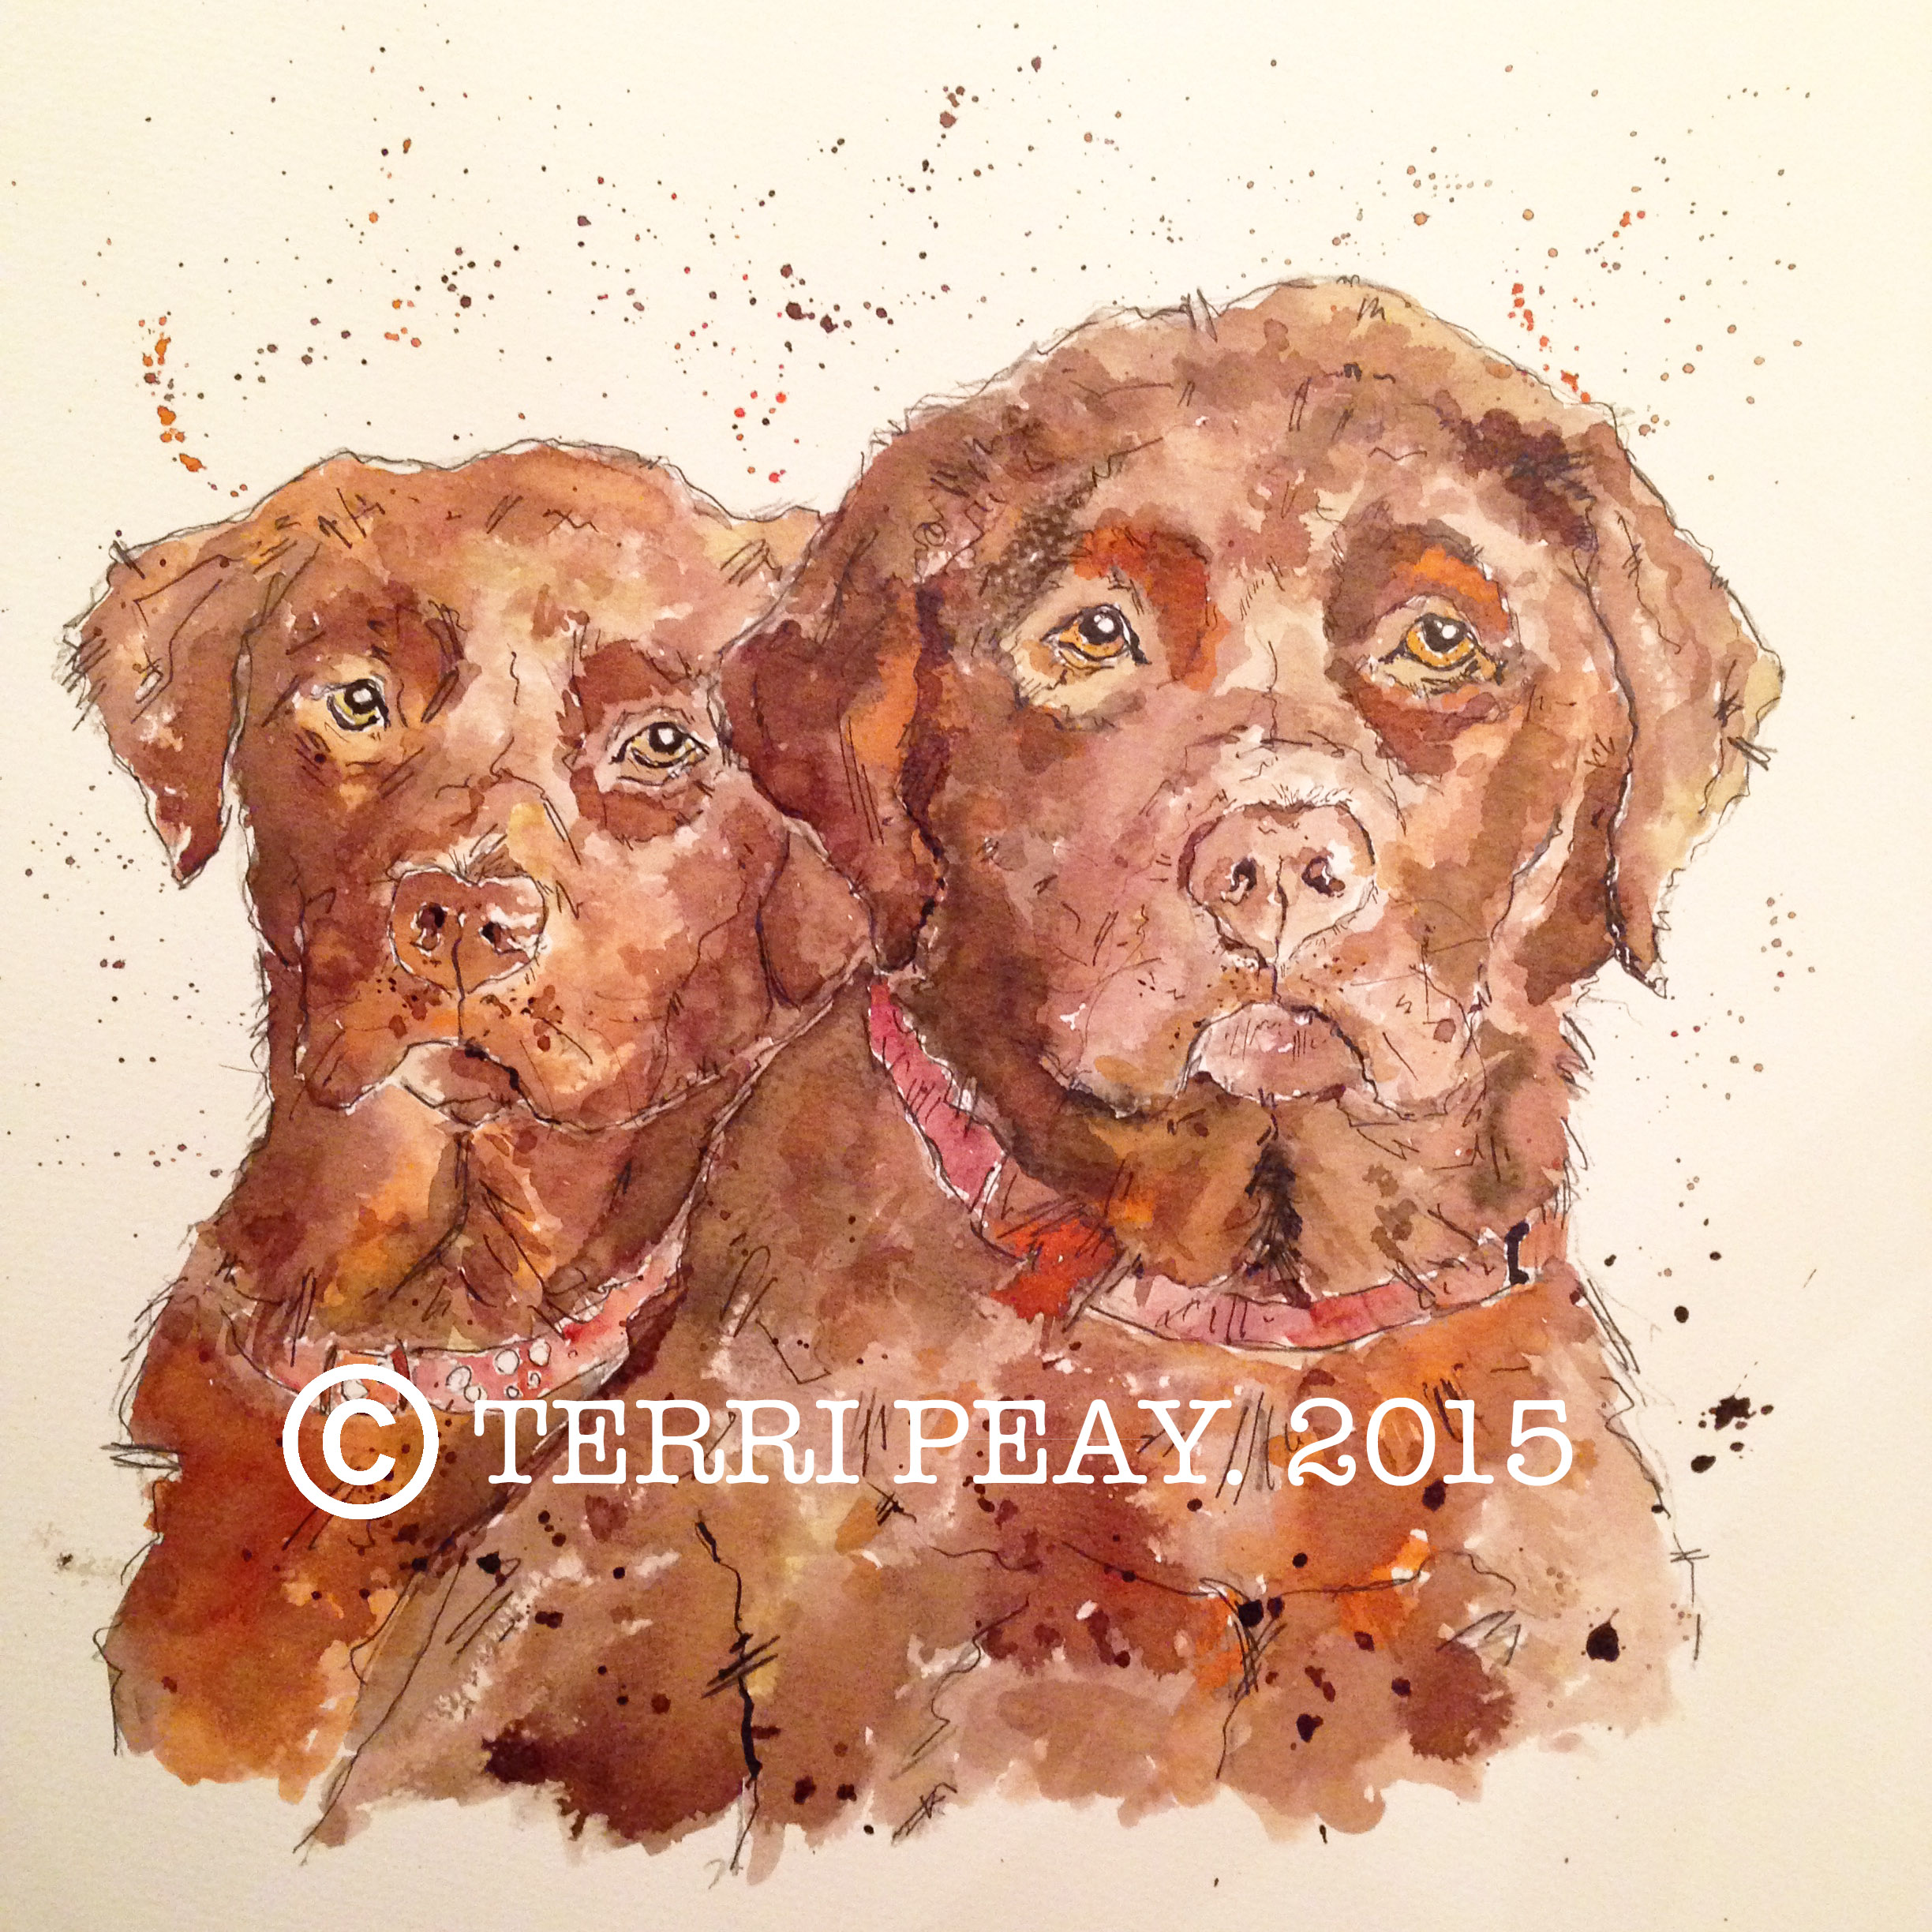 'Two Labradors' By Terri Peay